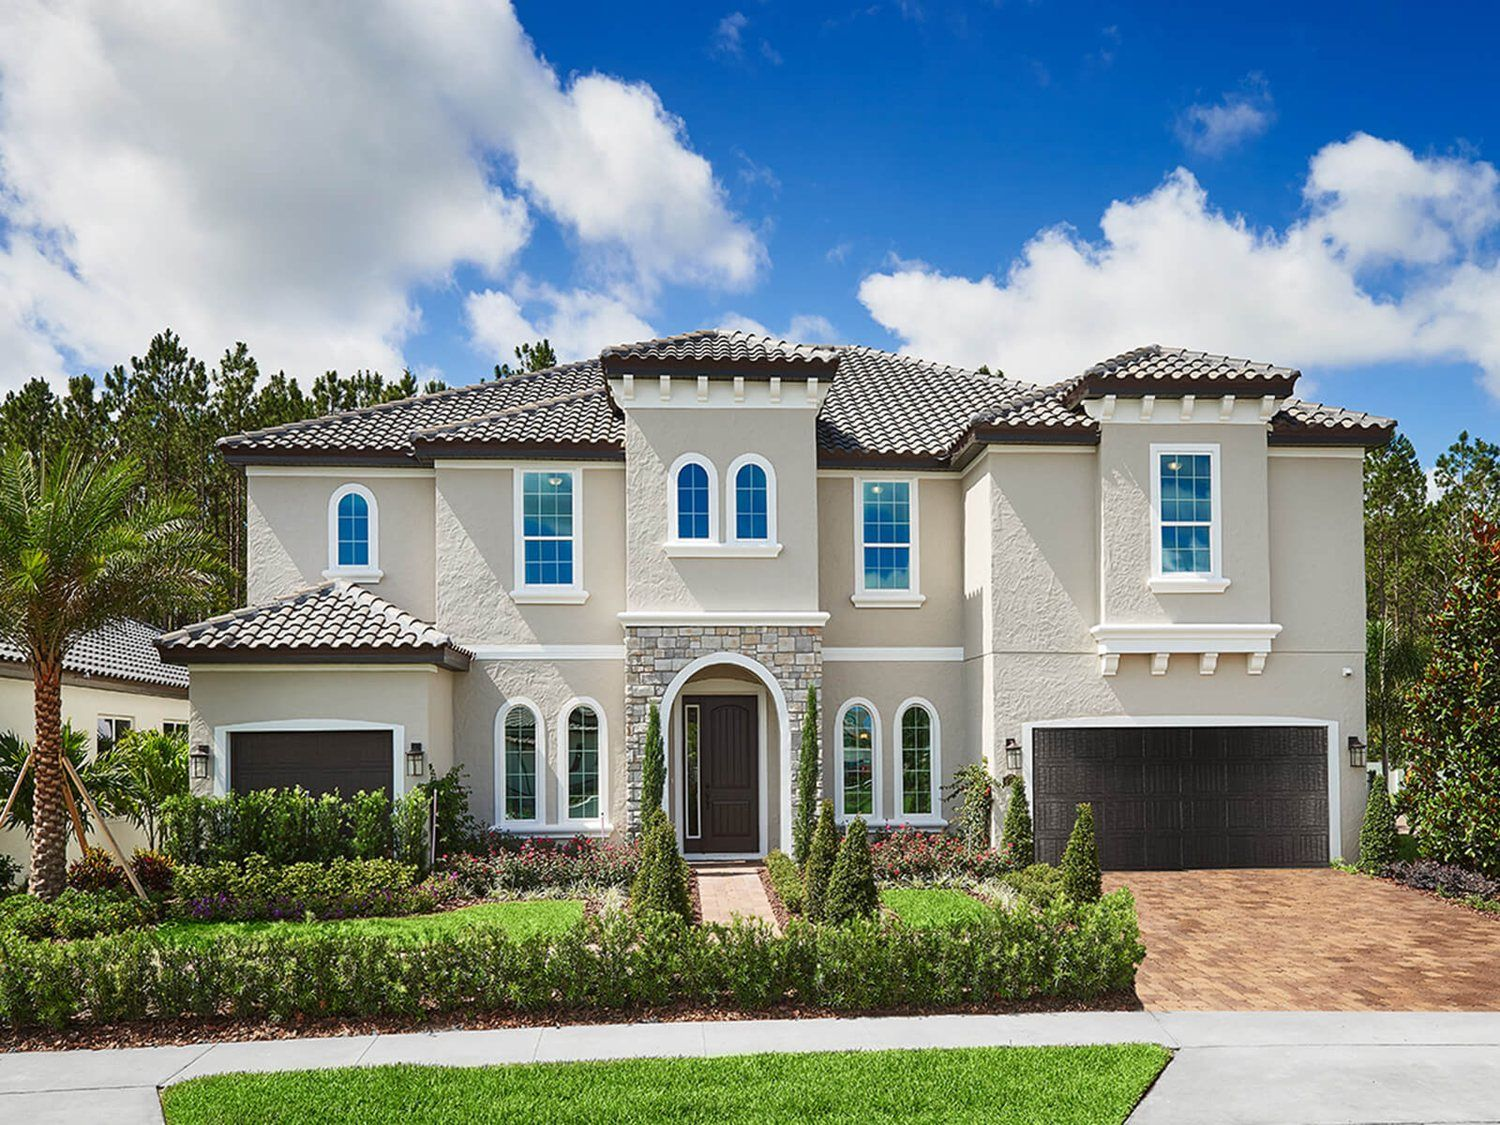 Custom Estate Home In Orlando Florida Rental Homes Near Me Renting A House Affordable Rentals